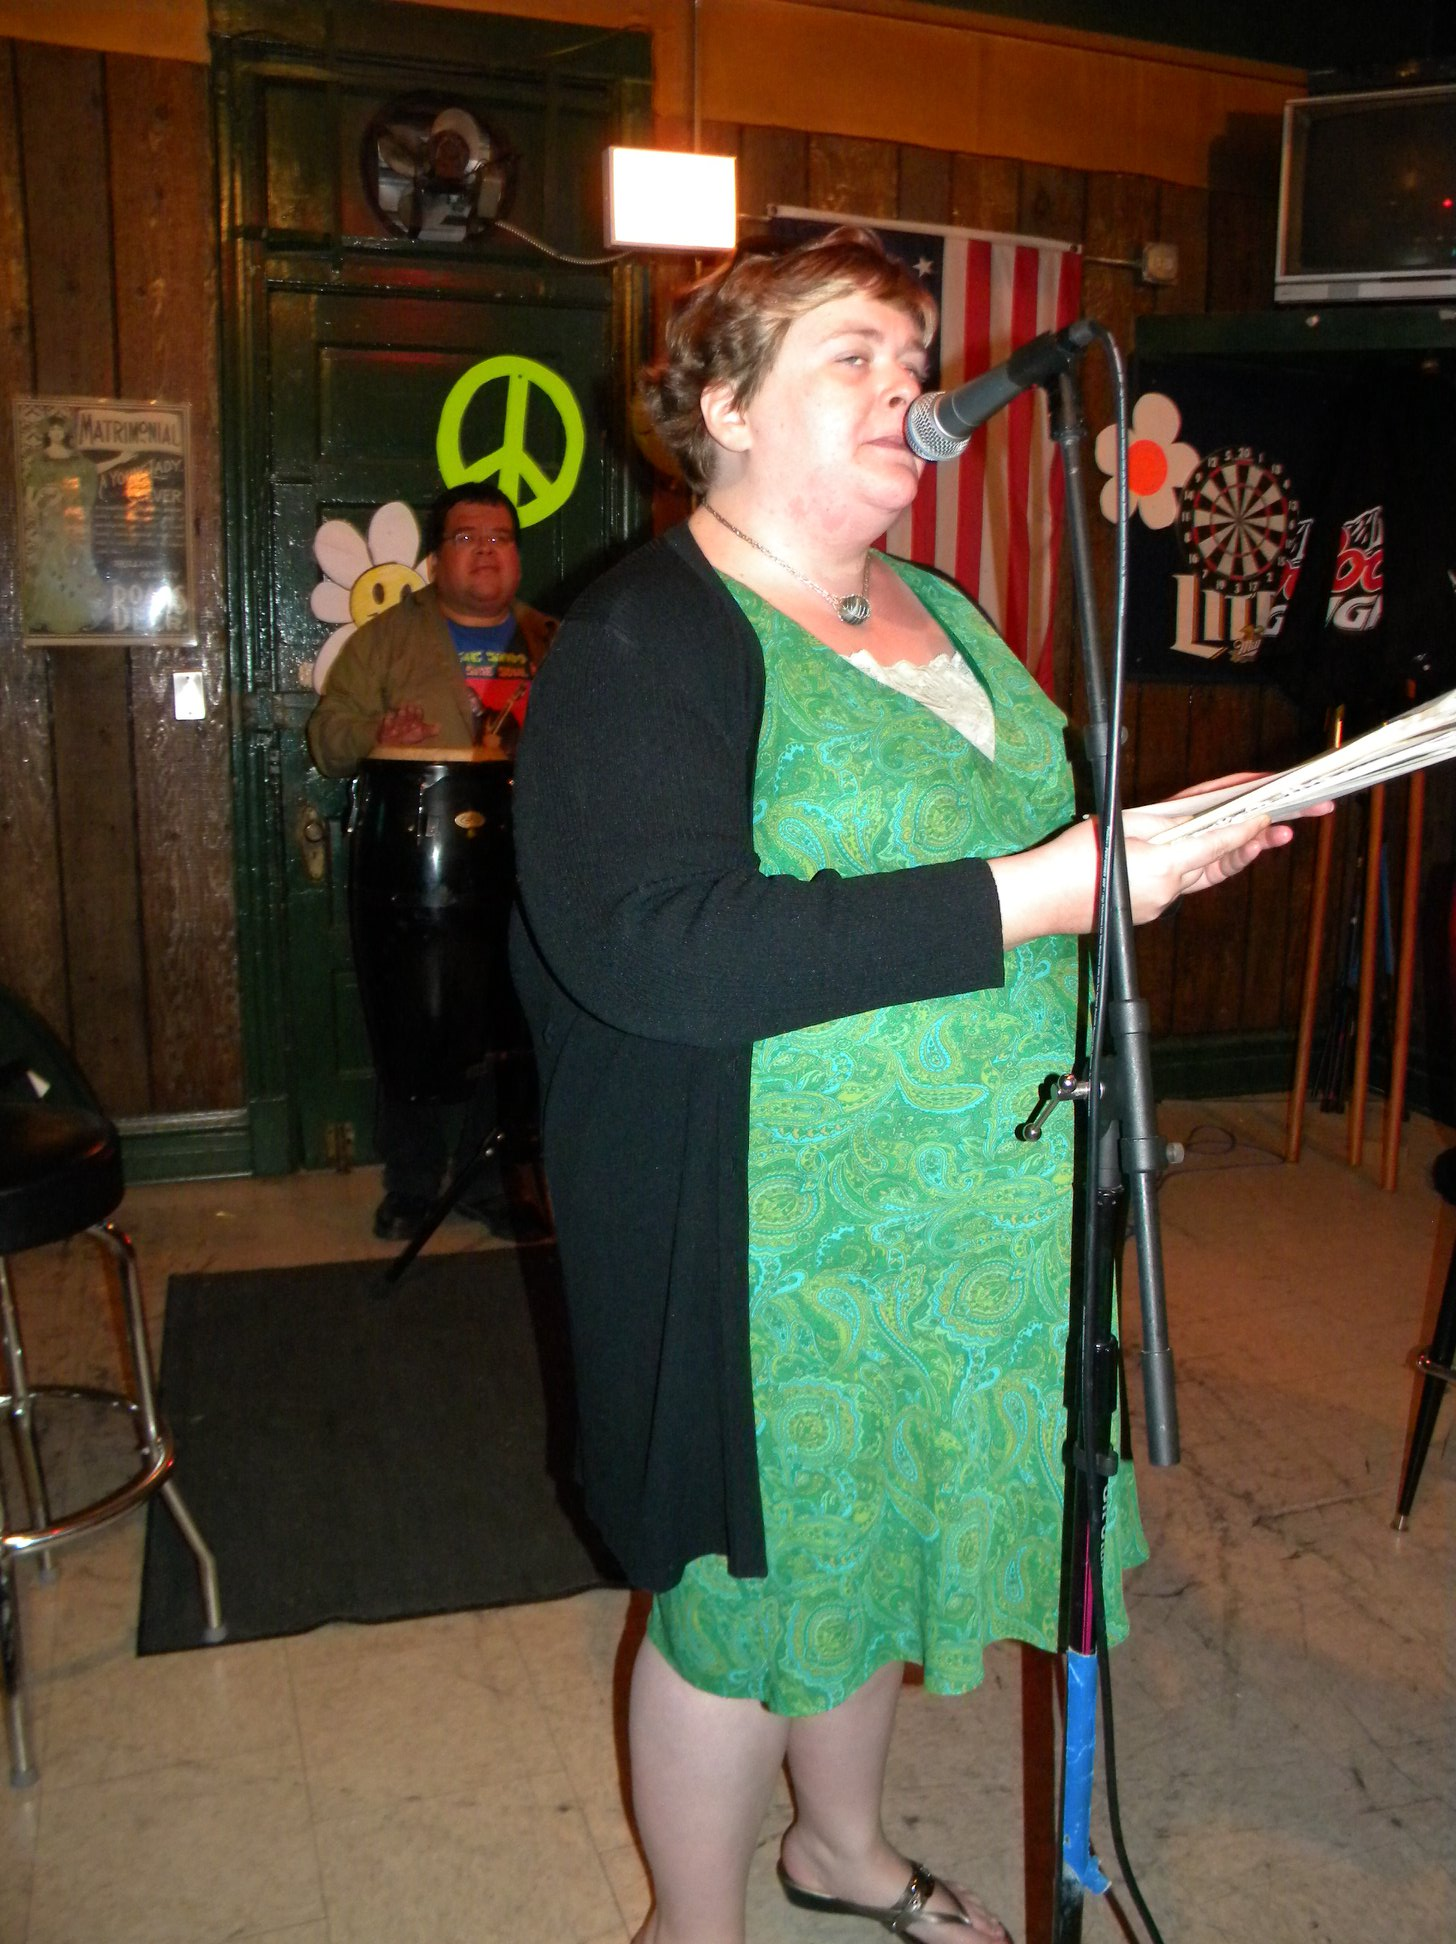 A photo of me standing at a mic in a green knee-length dress with a black cardigan, reciting poety at an open mic night. A man stands in the background in front of a green peace sign.